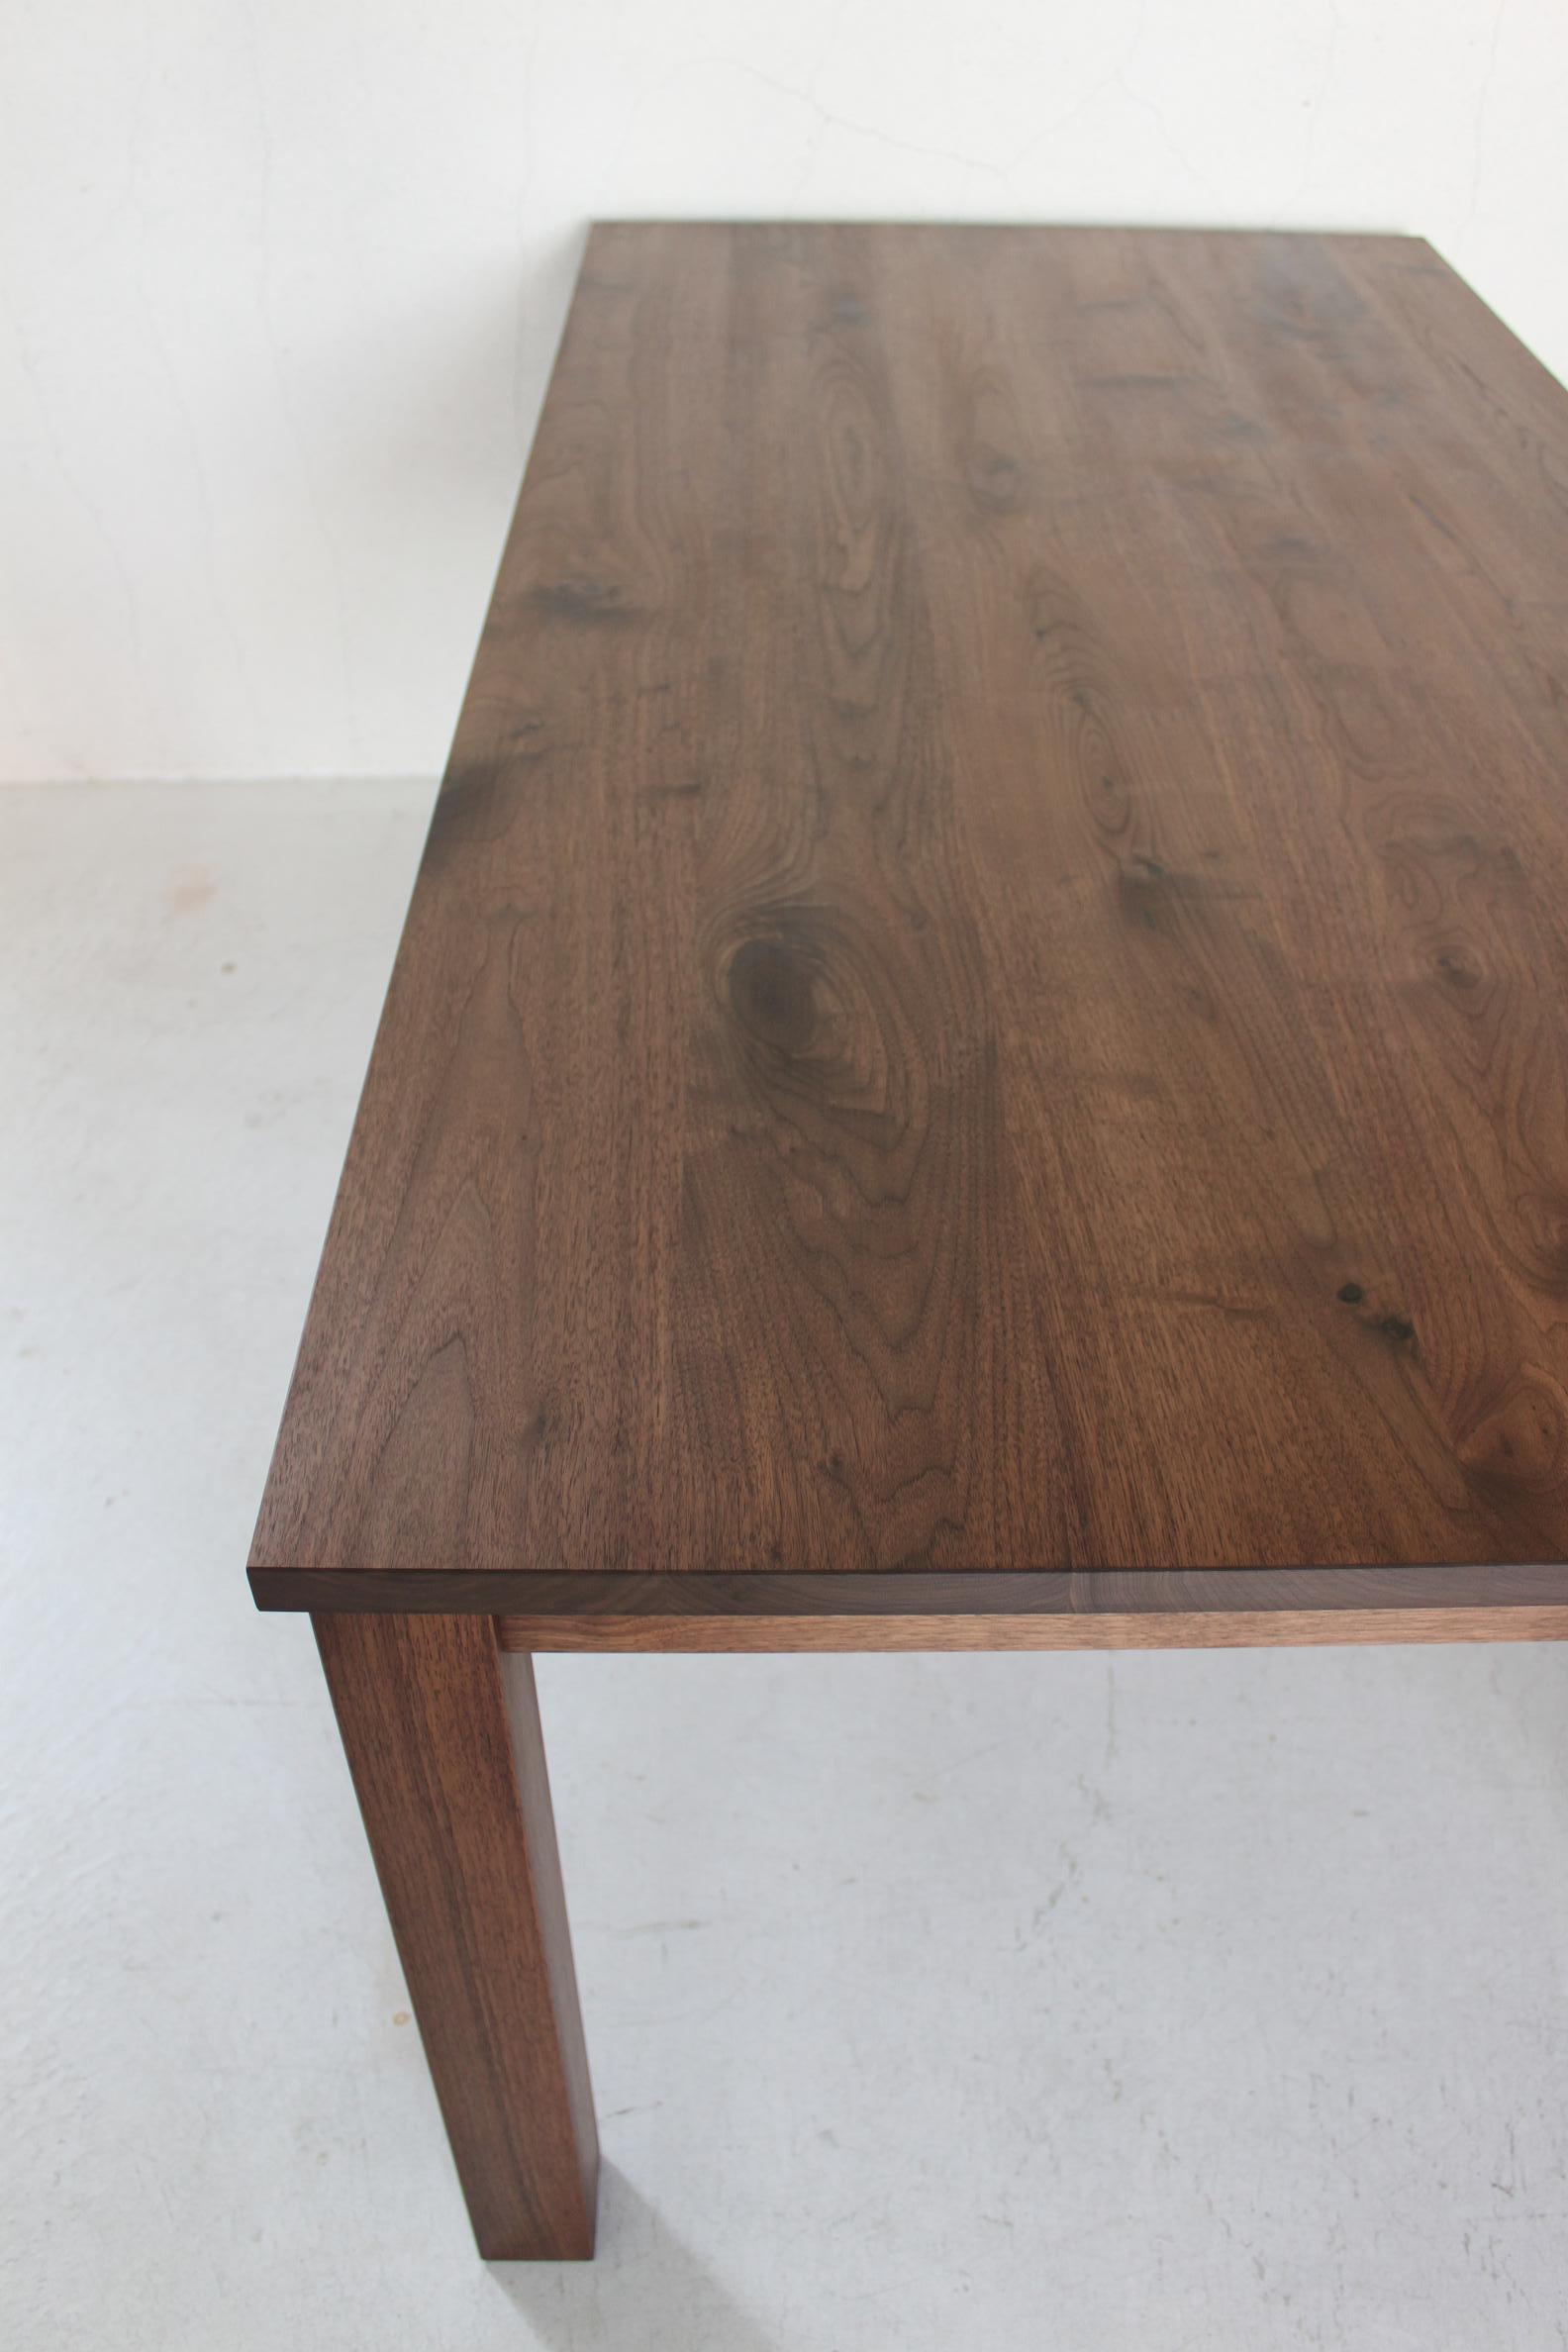 NS DINING TABLE_c0146581_1242326.jpg